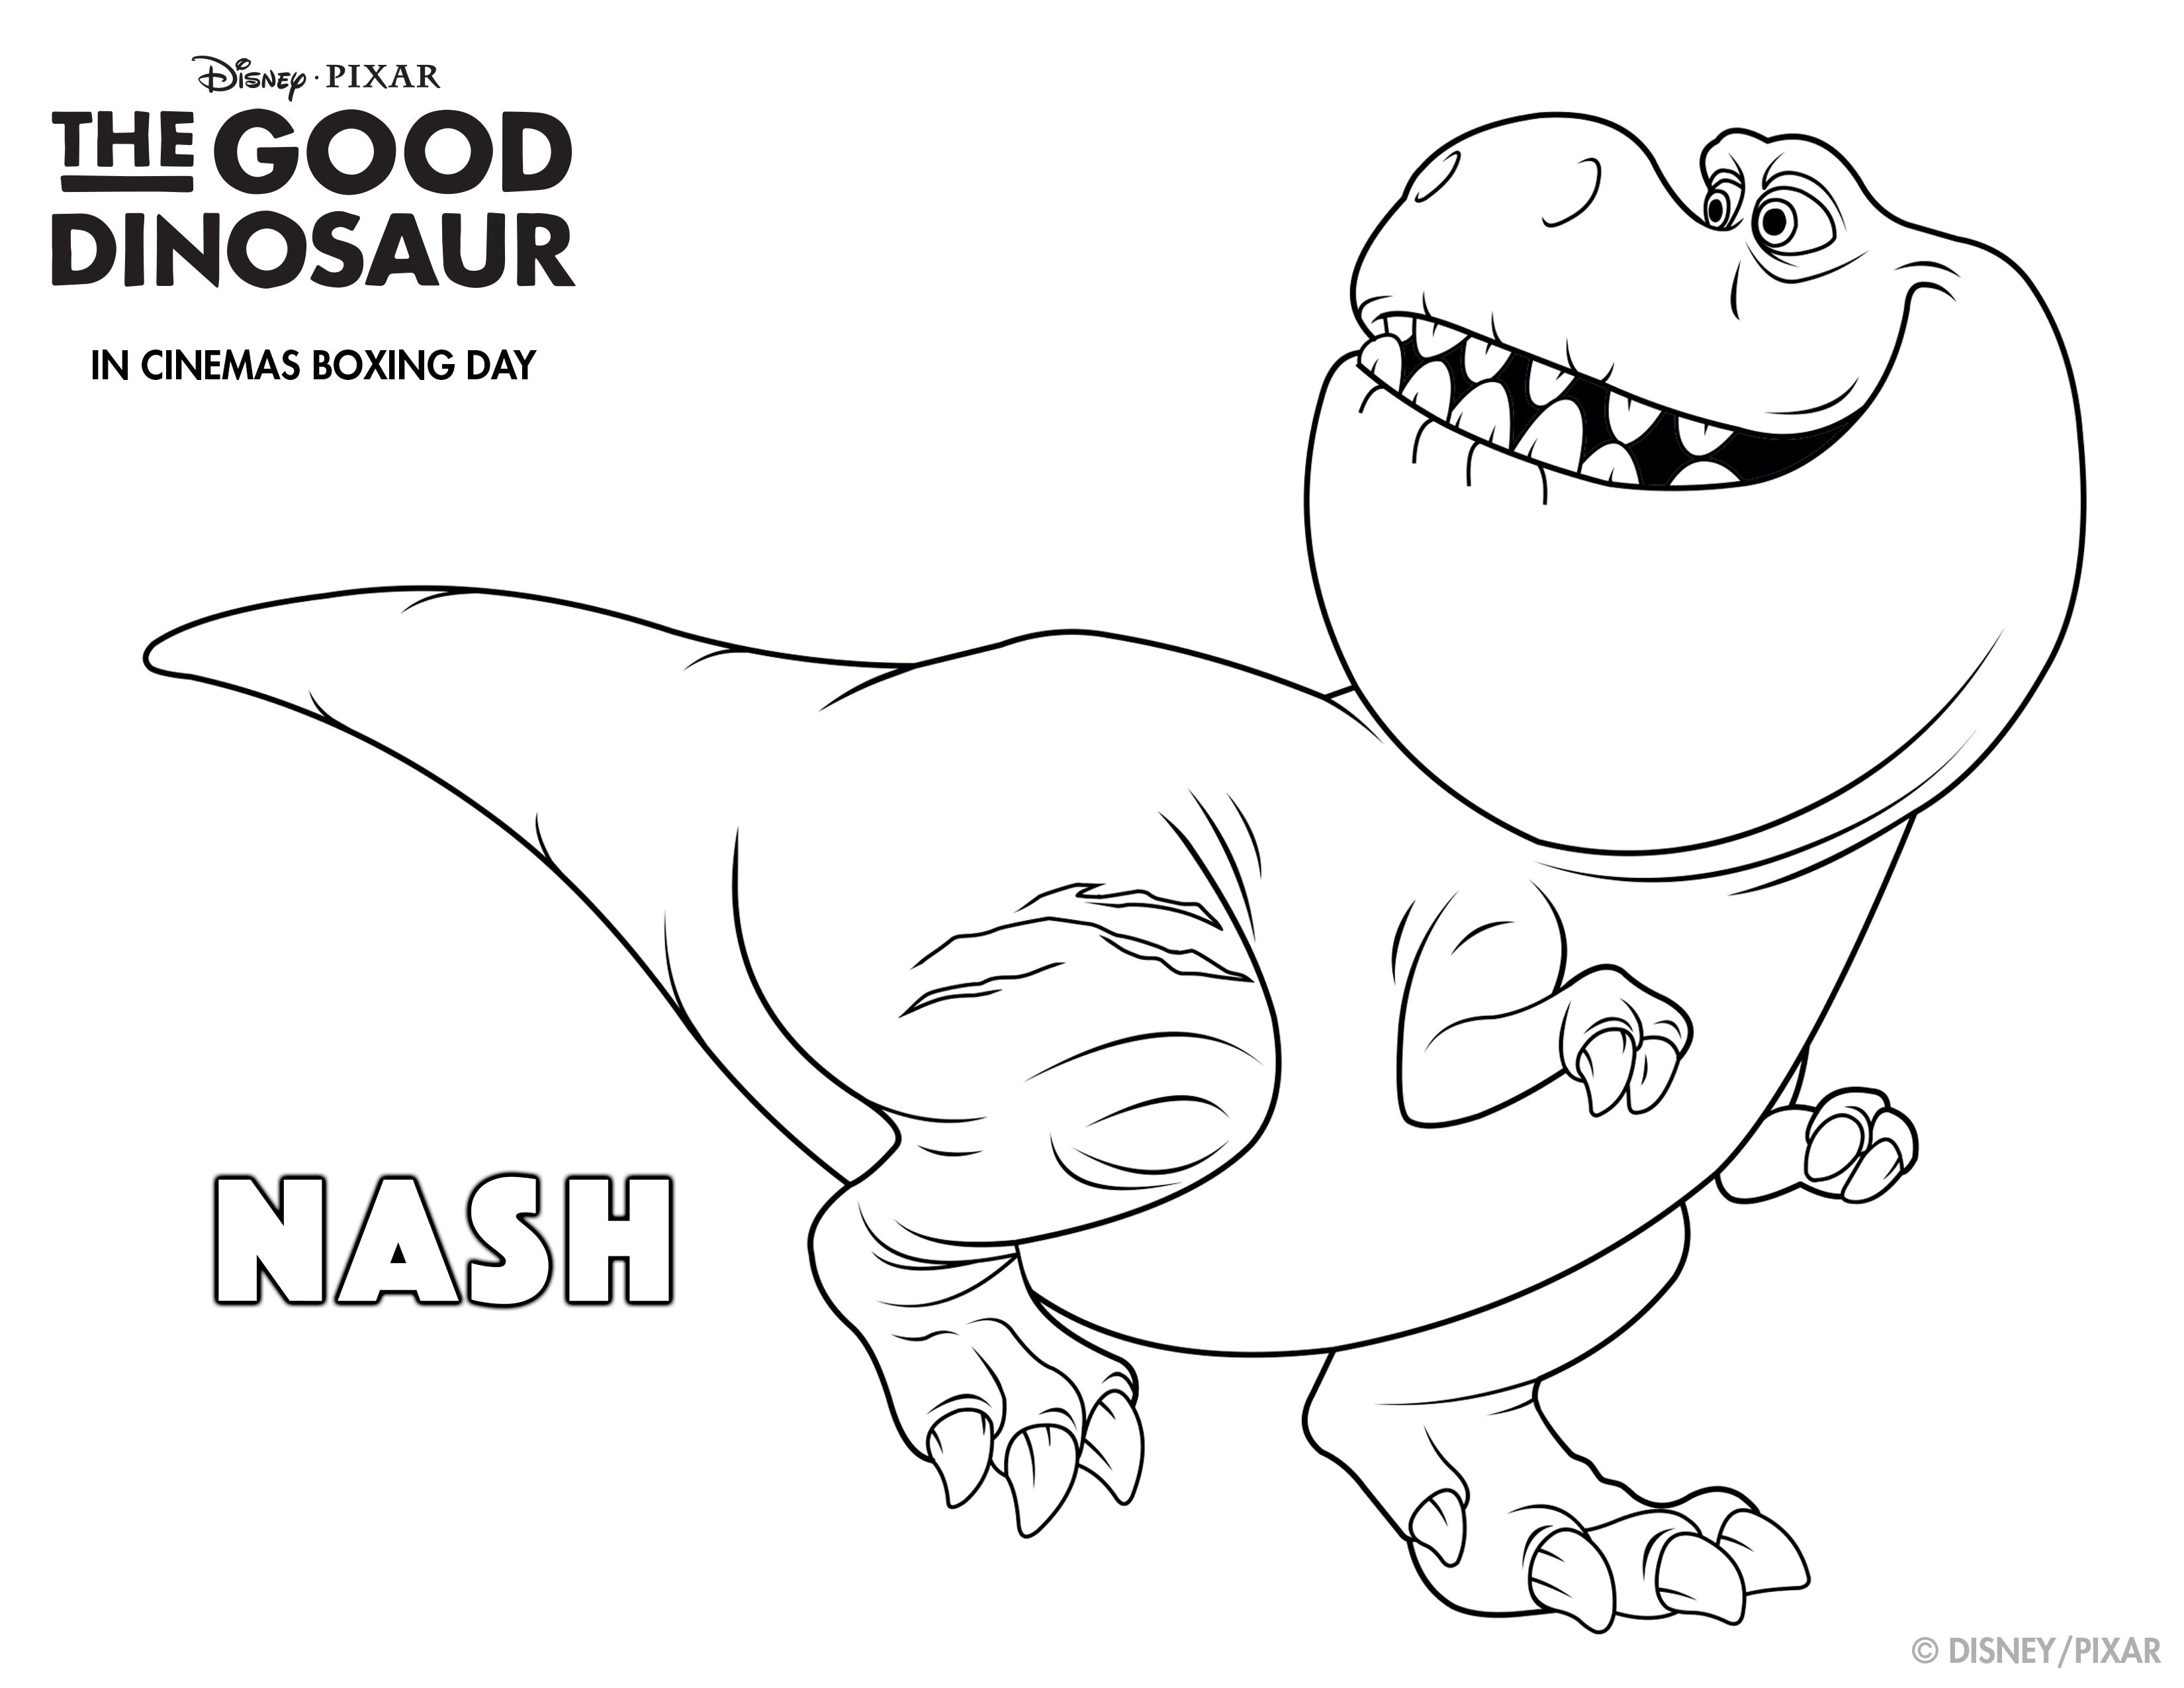 45 New Images Of The Good Dinosaur Coloring Pages In 2020